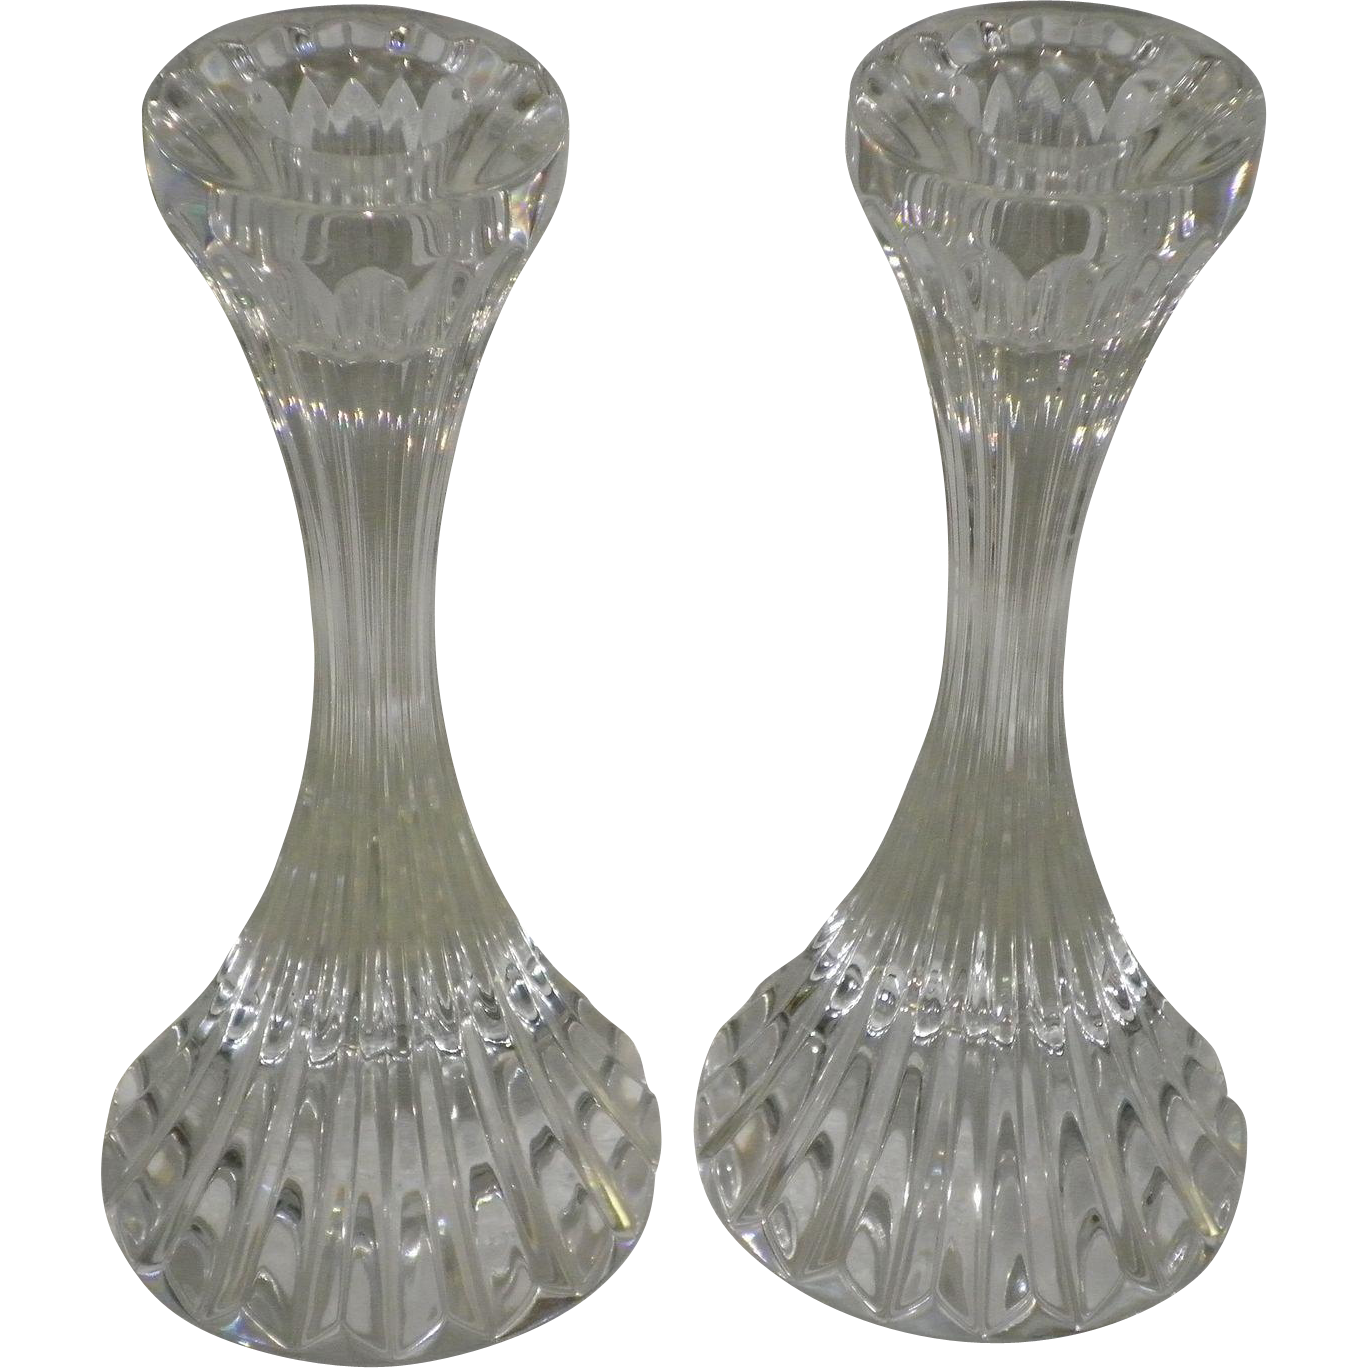 "Pair Of Baccarat Crystal Massena"" Single Light"" Candlestick Holders"